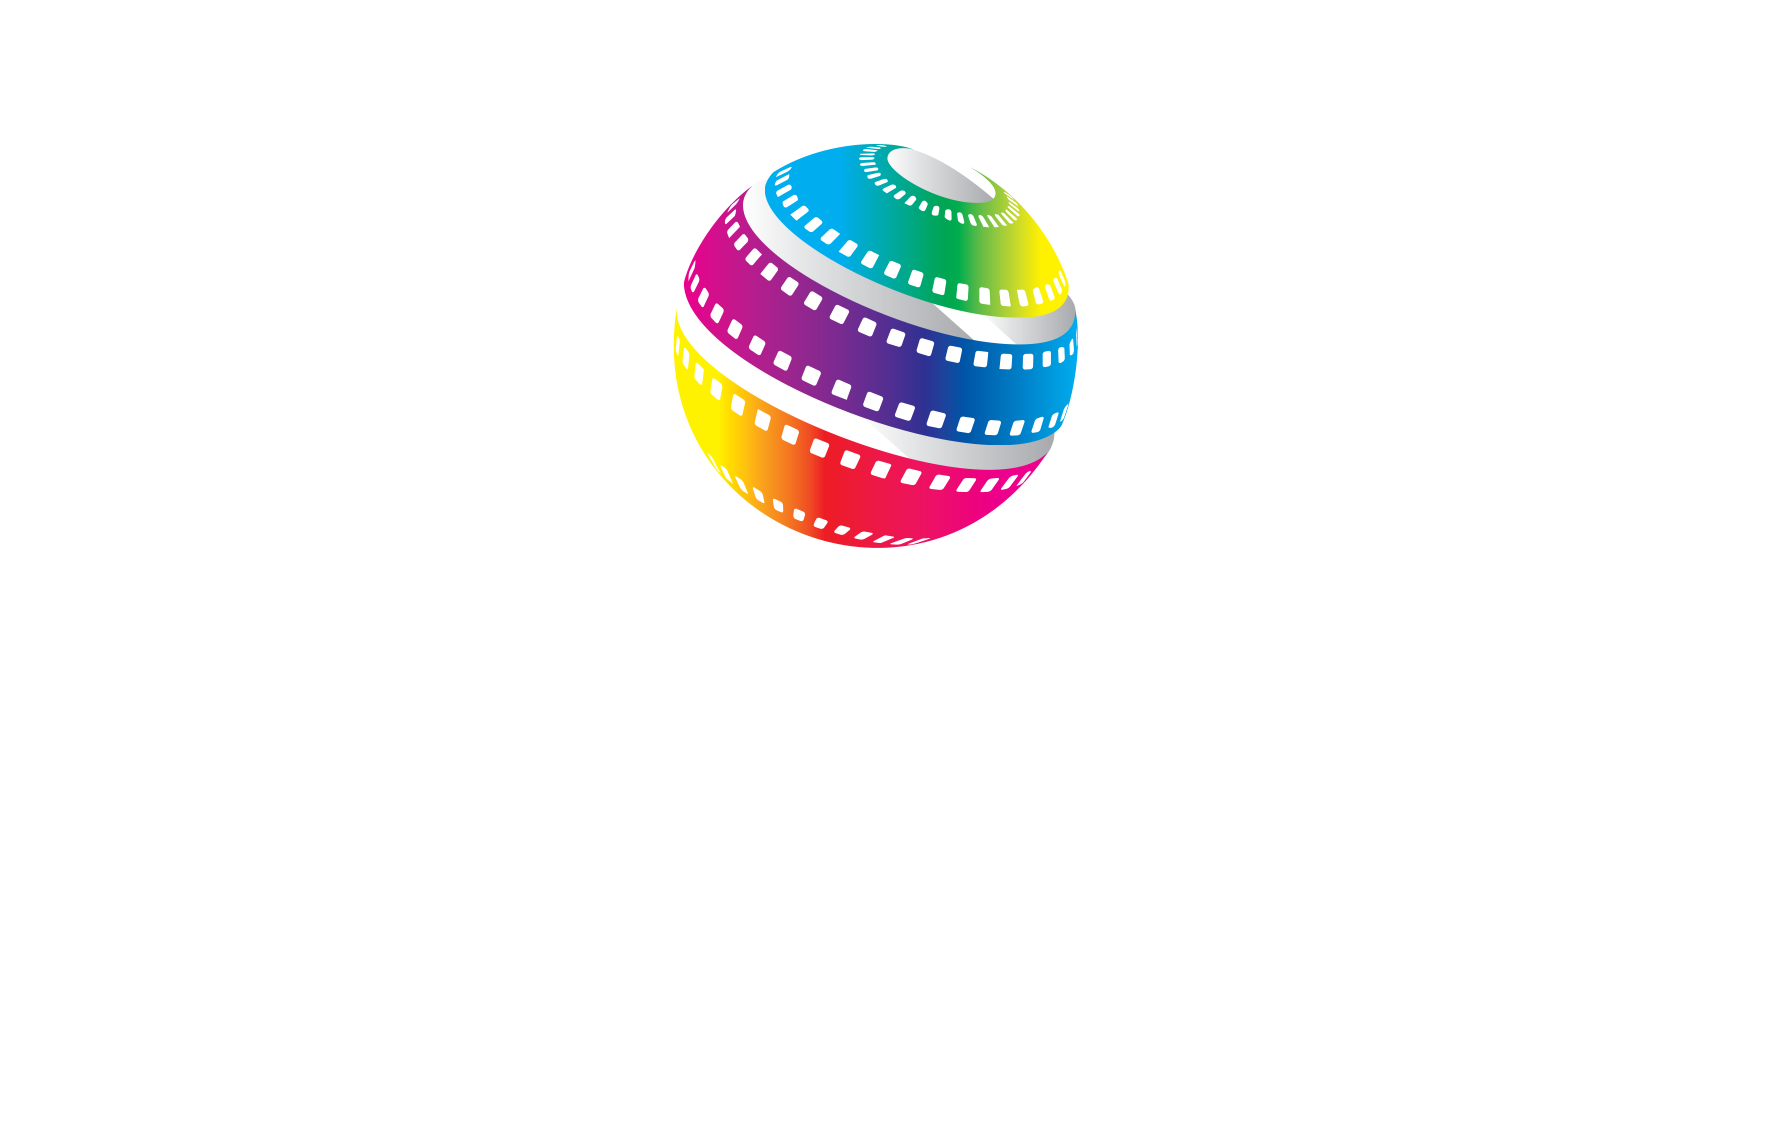 Cinemex logo